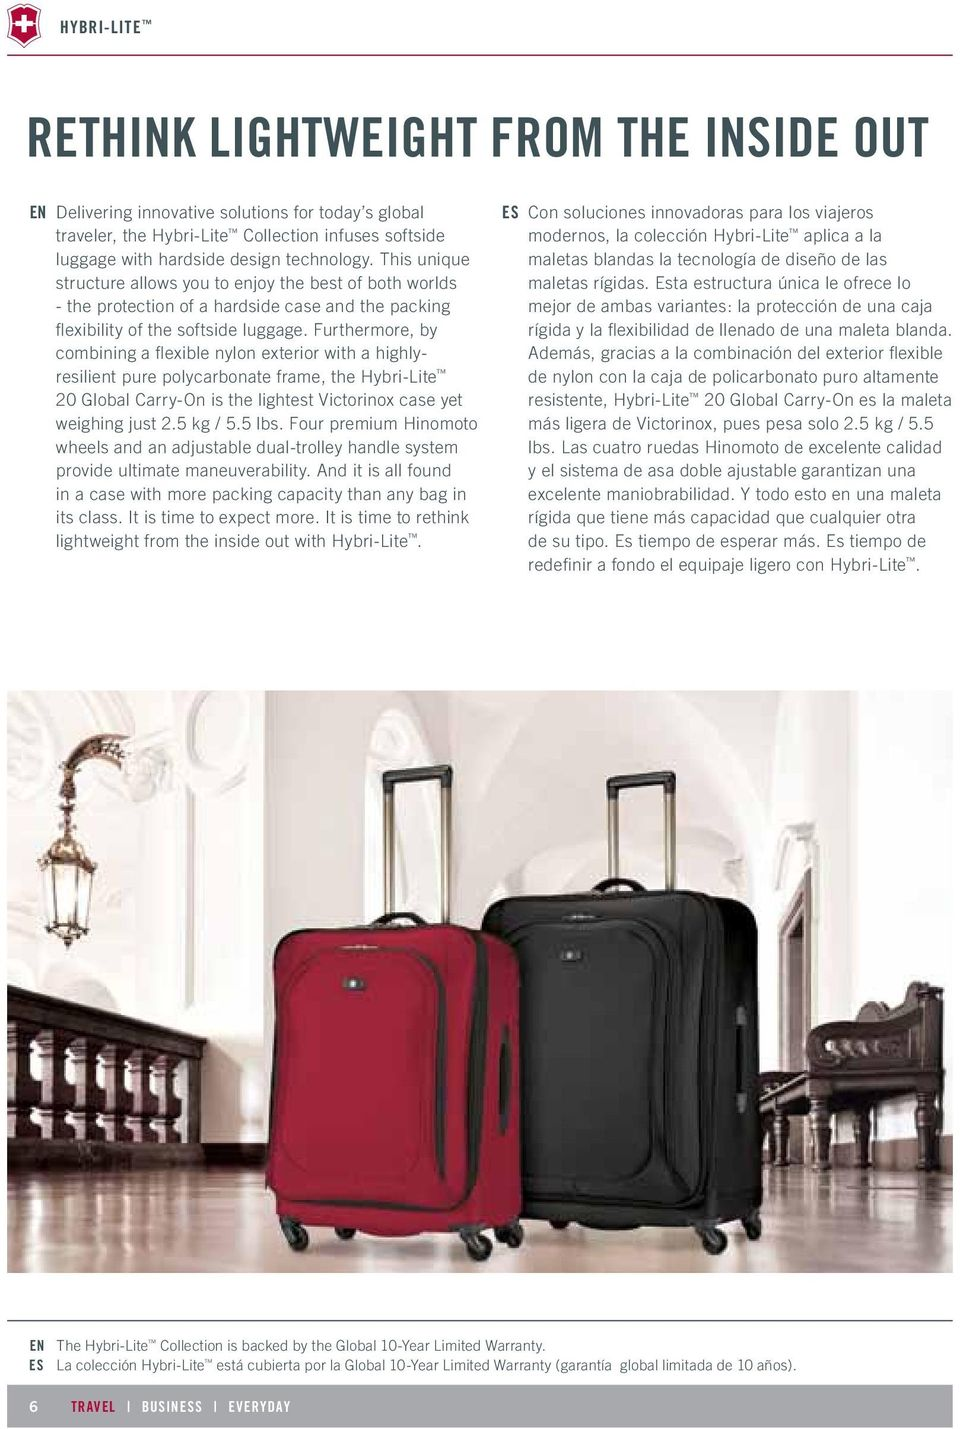 Furthermore, by combining a flexible nylon exterior with a highlyresilient pure polycarbonate frame, the Hybri-Lite 20 Global Carry-On is the lightest Victorinox case yet weighing just 2.5 kg / 5.